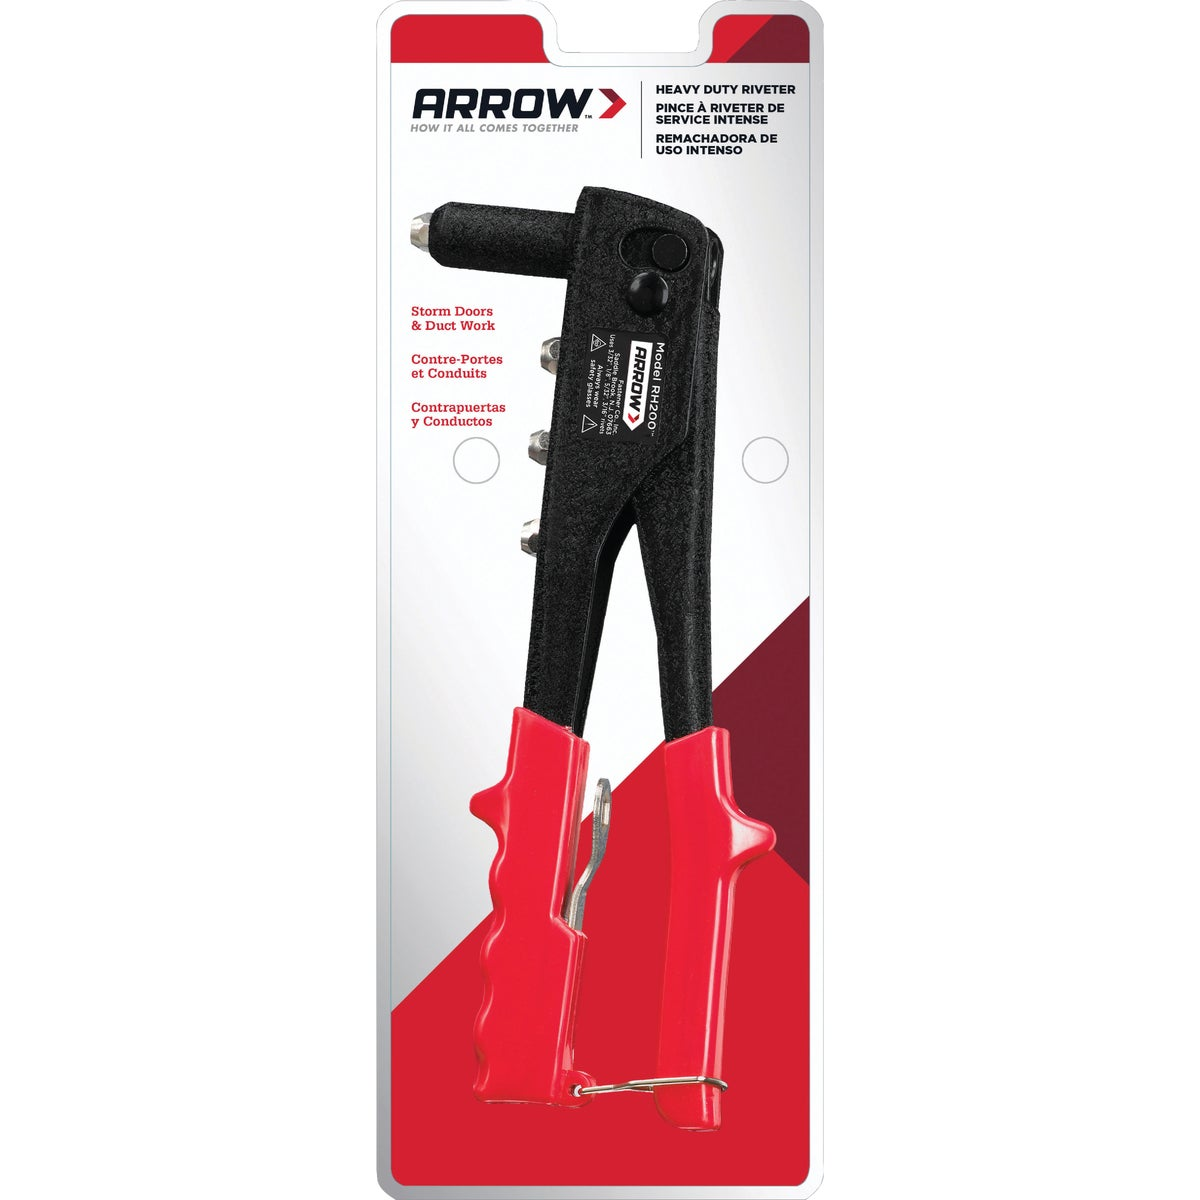 HEAVY DUTY RIVET TOOL - RH200S by Arrow Fastener Co